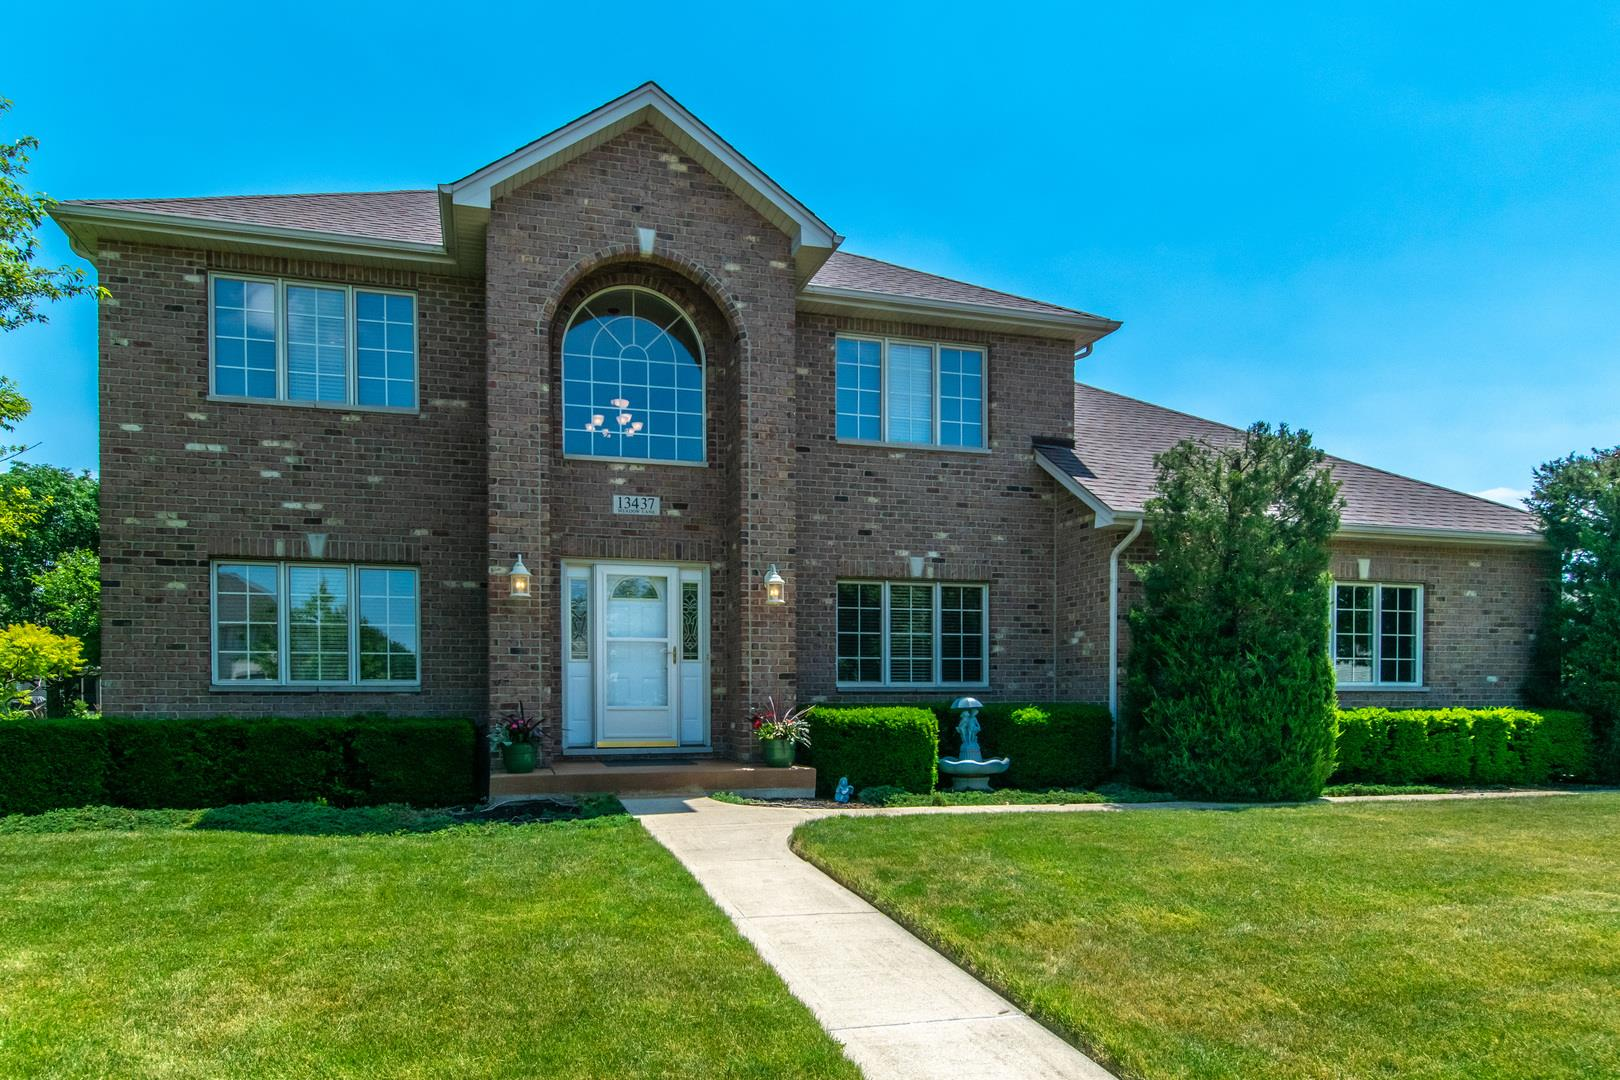 13437 Meadow Lane, Plainfield, IL 60585 - #: 10744656